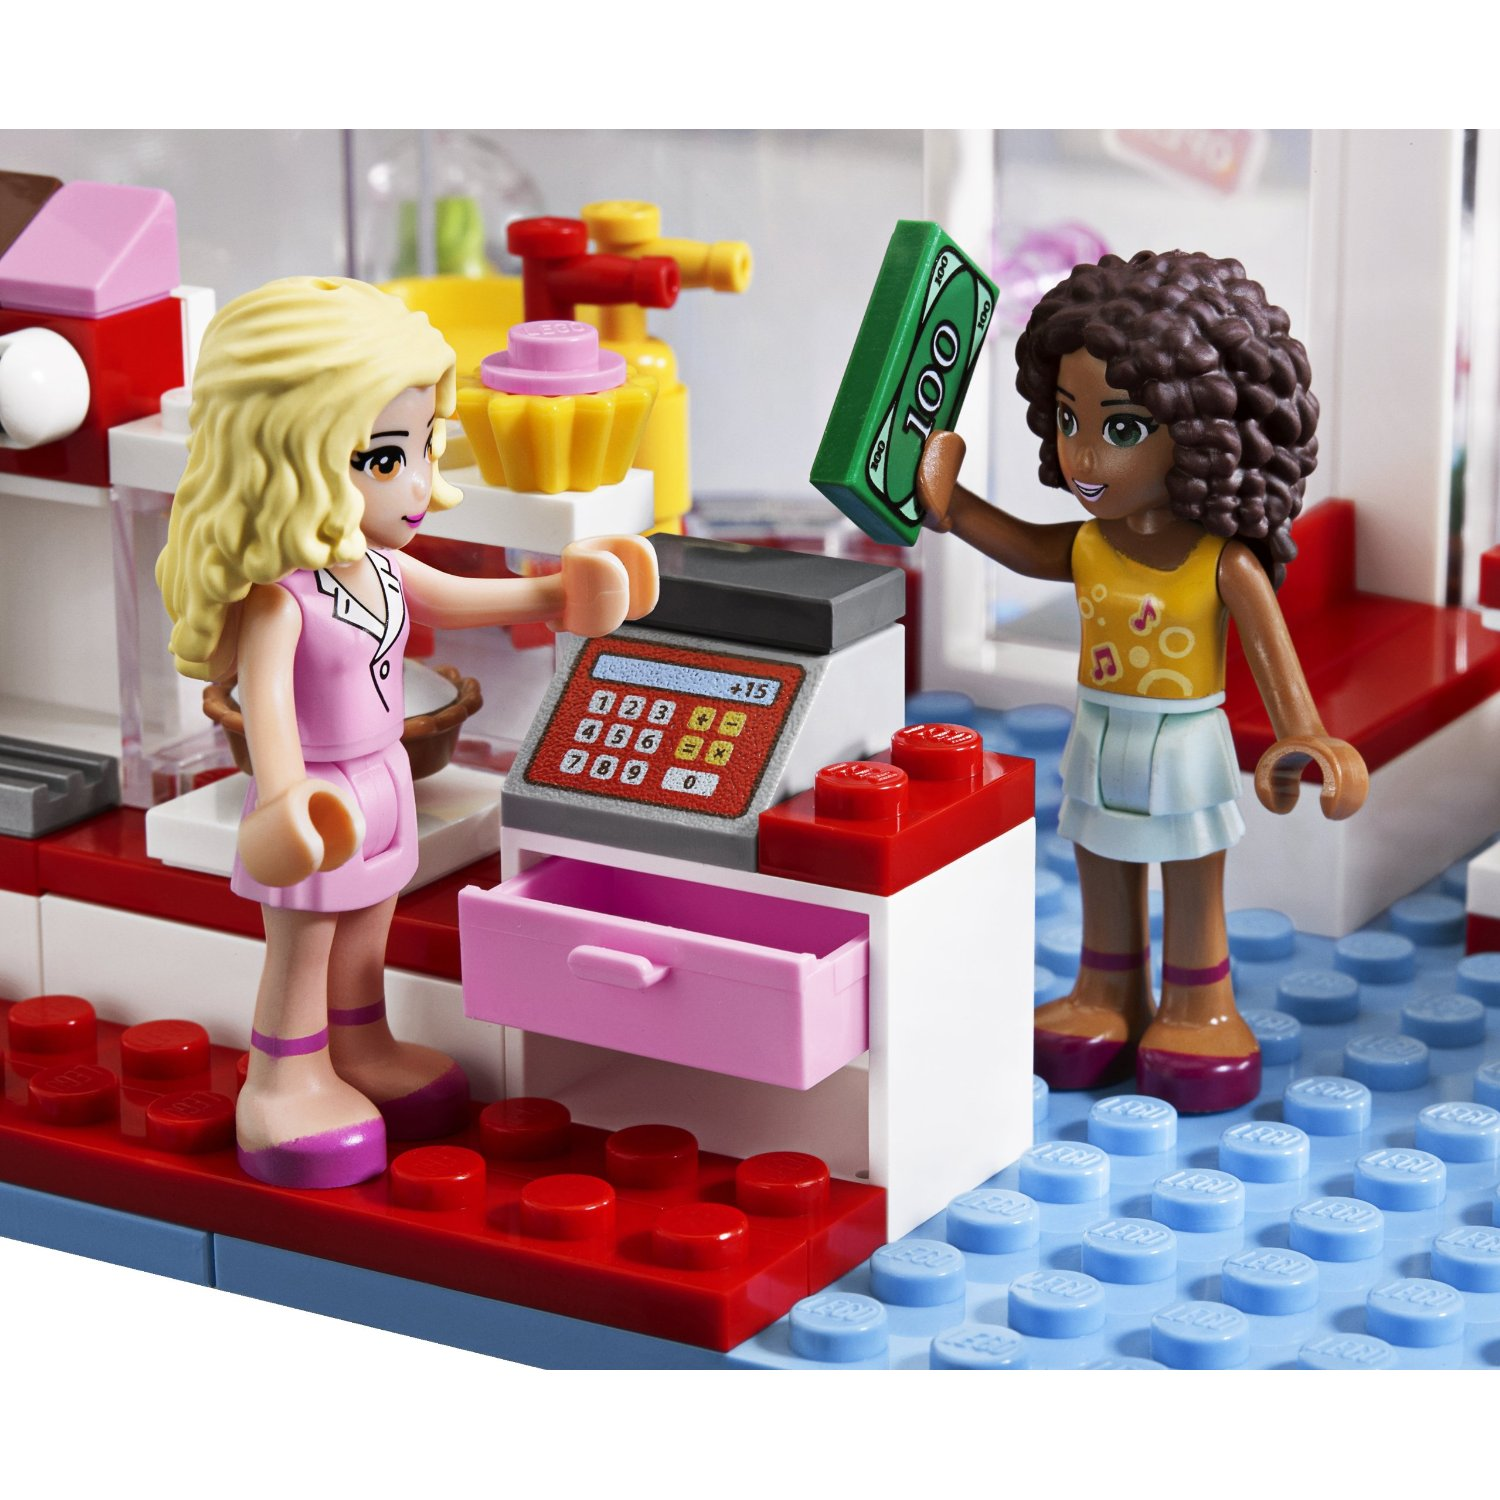 Lego Toys For Girls : Mac toys lego friends legos for girls